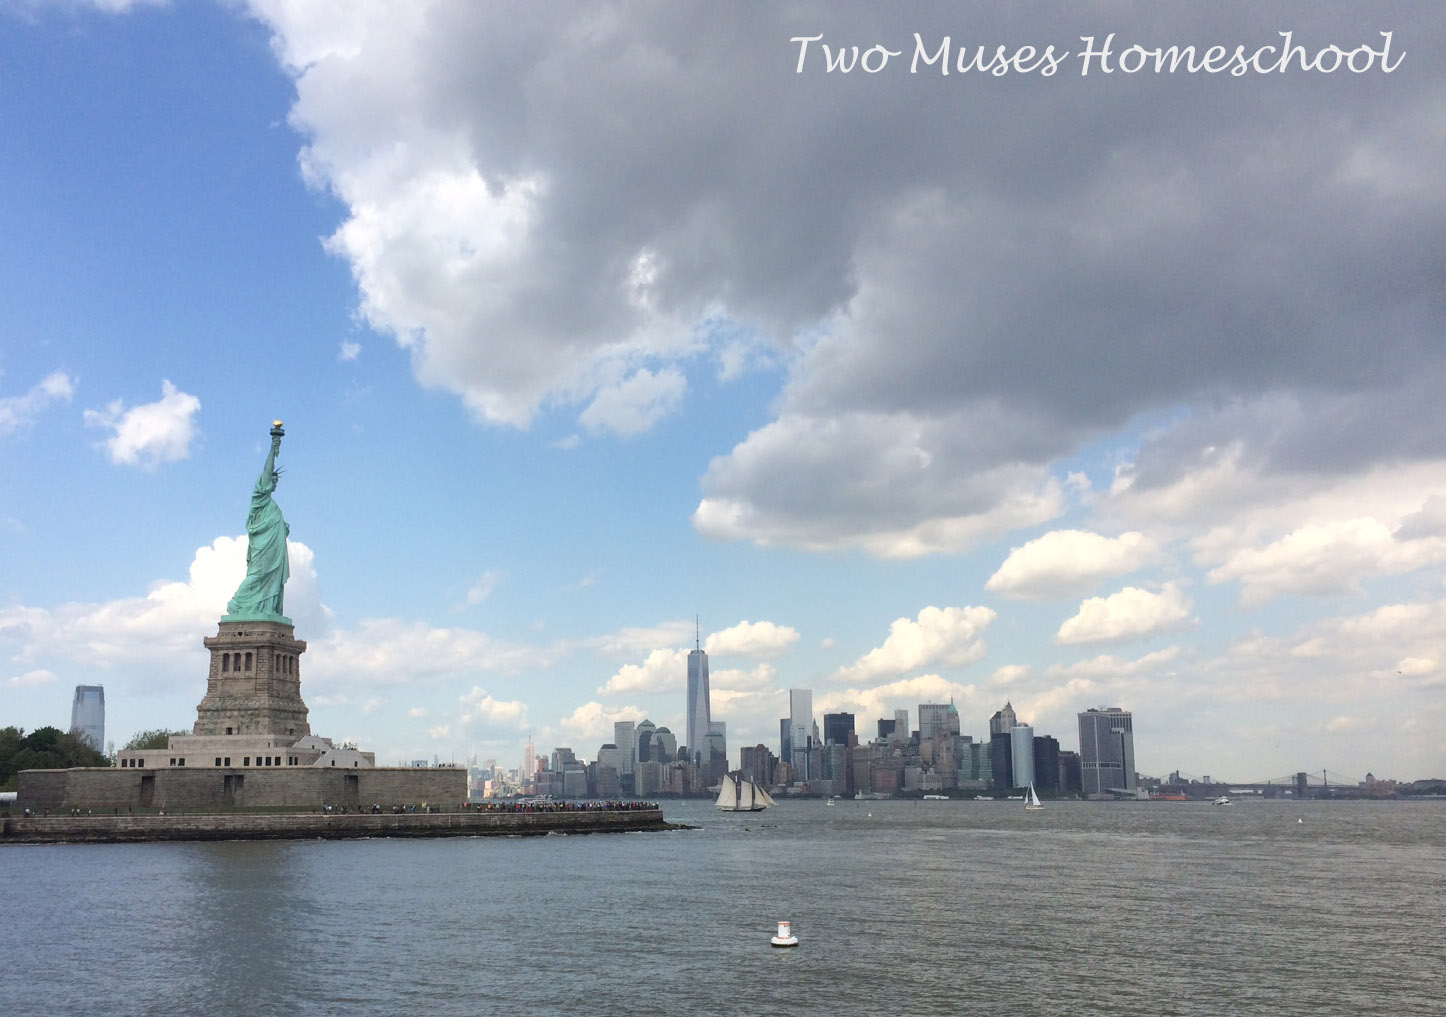 Statue of Liberty and NYC Skyline